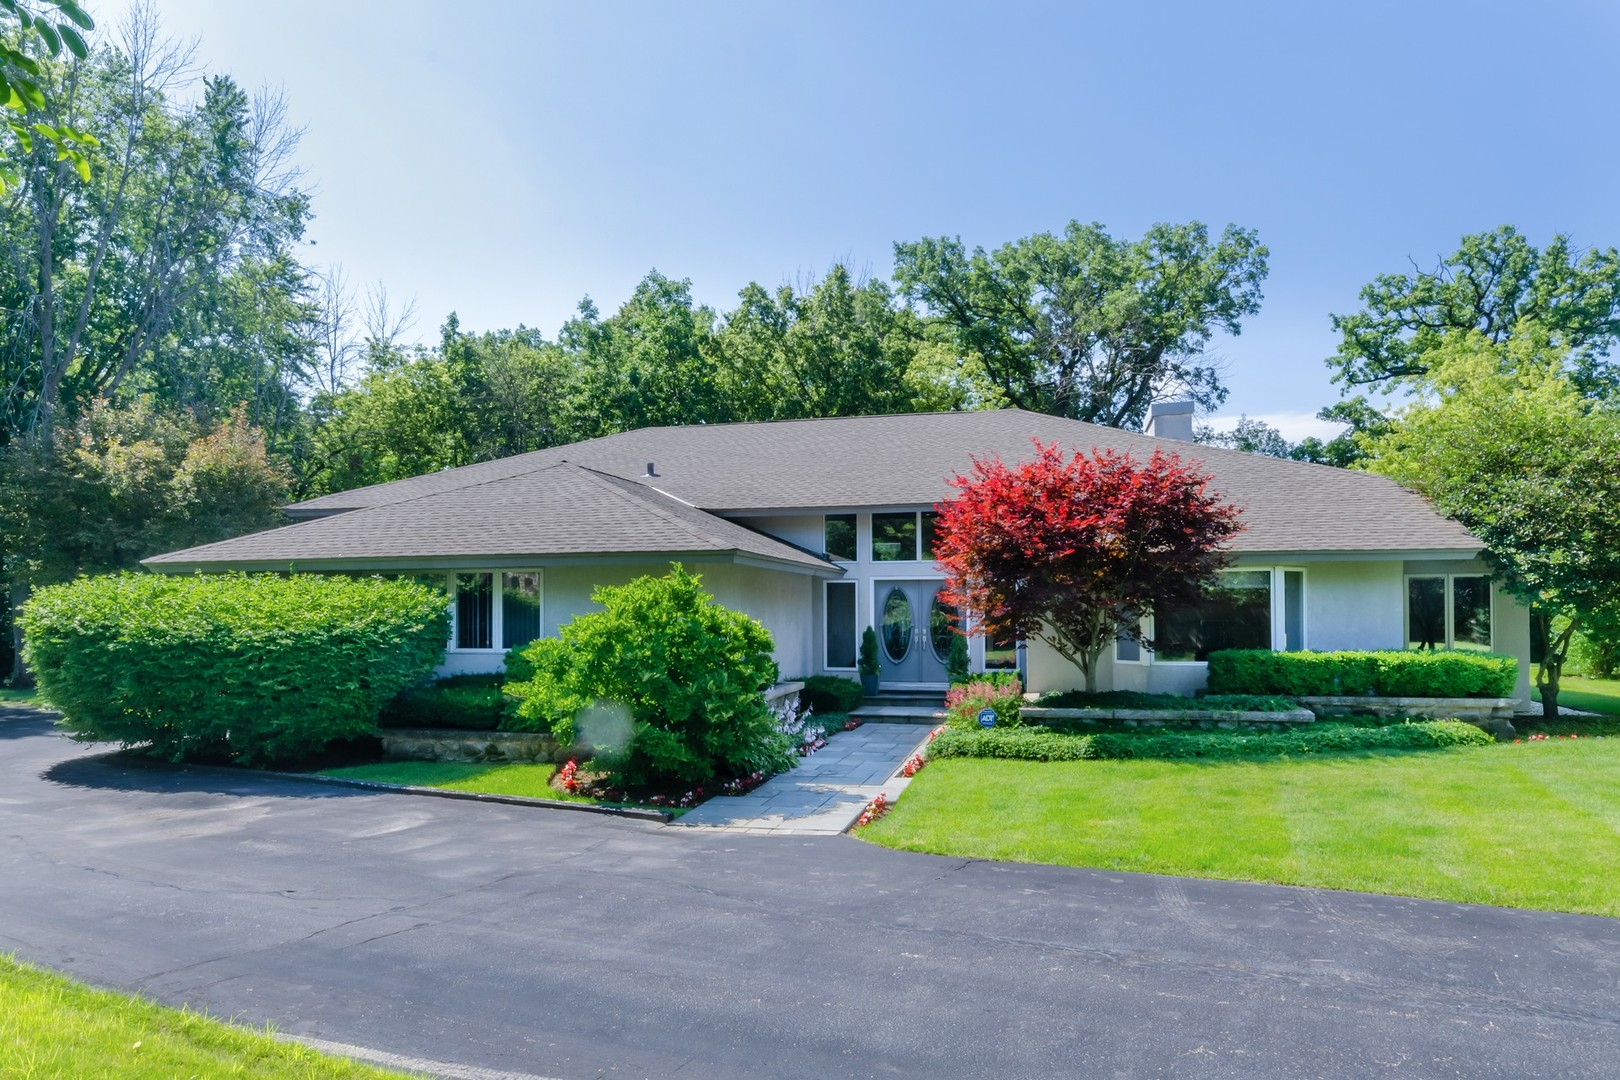 1255 North Waukegan Road, Lake Forest IL 60045